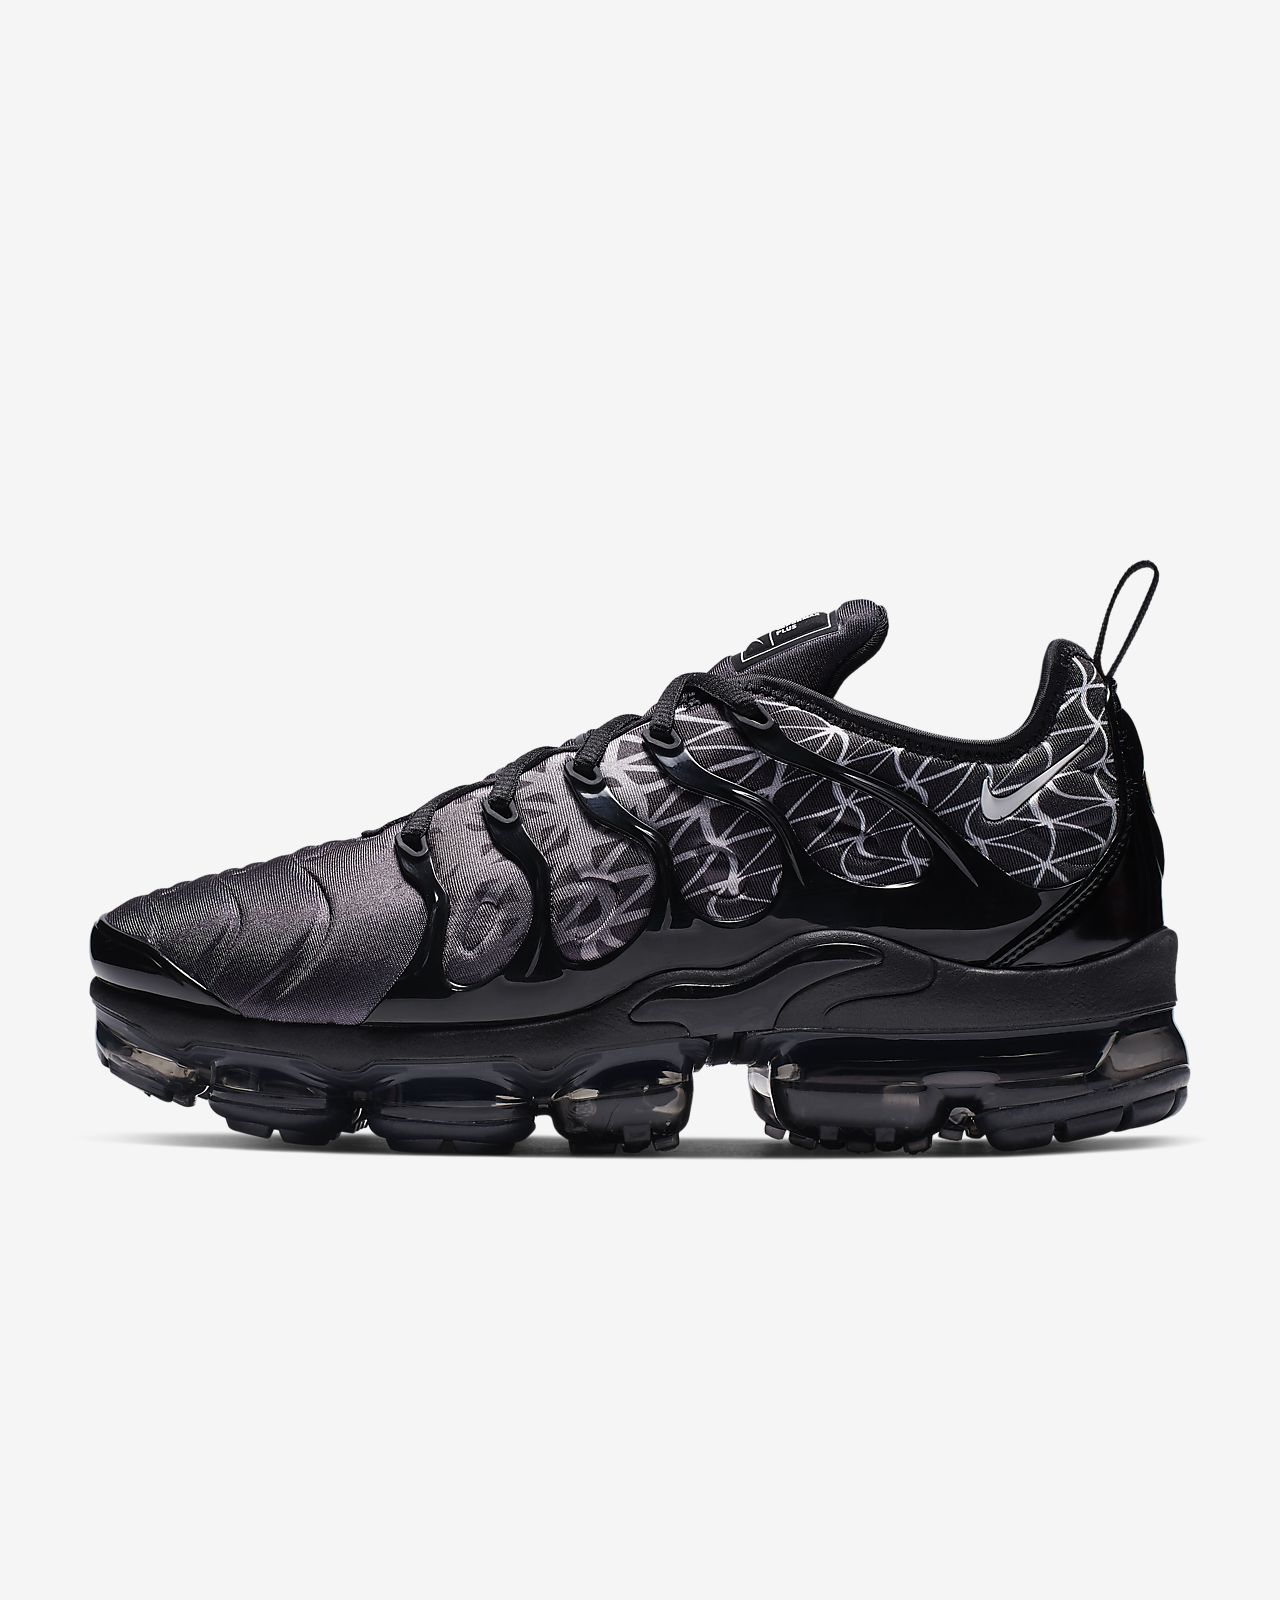 8a55afc2eca3 Nike Air VaporMax Plus Men s Shoe. Nike.com GB